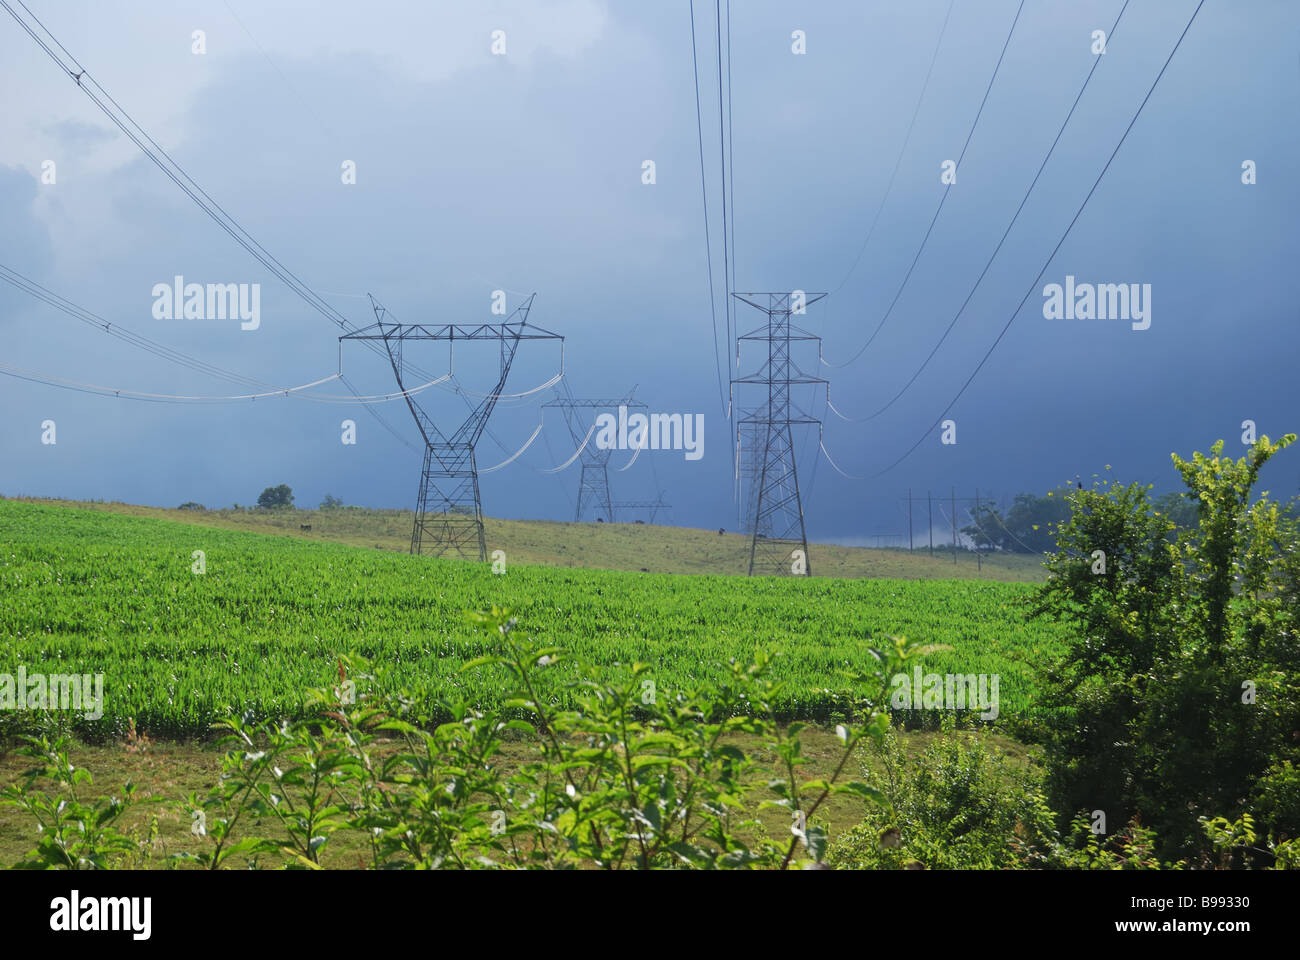 Electrical transmission towers isolated against a beautiful blue sky.  Photo by Darrell Young. - Stock Image